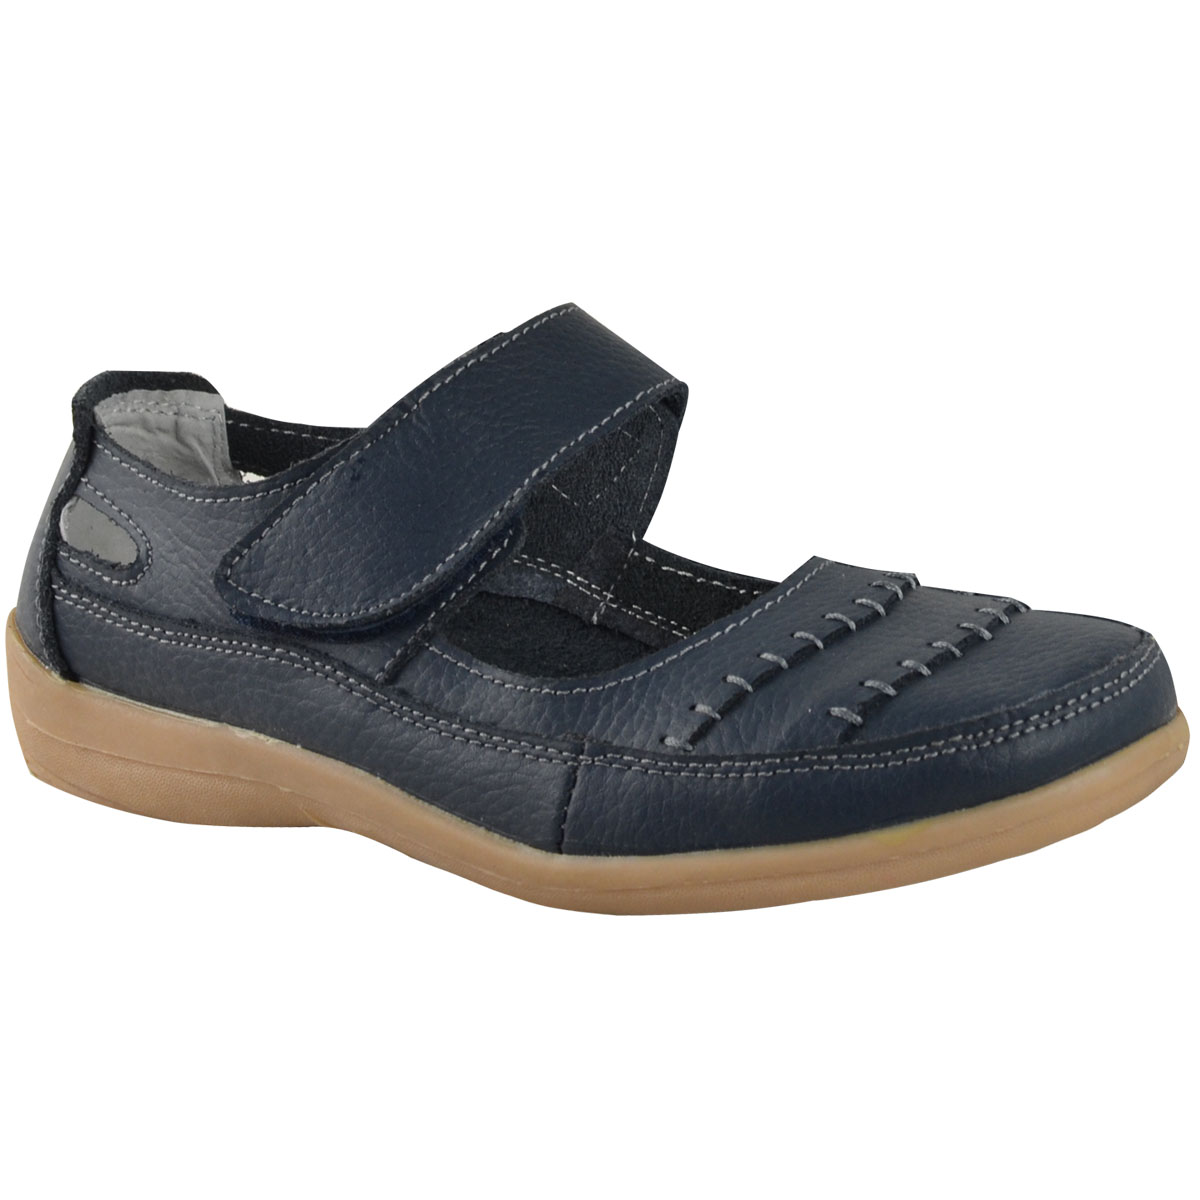 Mary Jane Shoes For Women Amazon